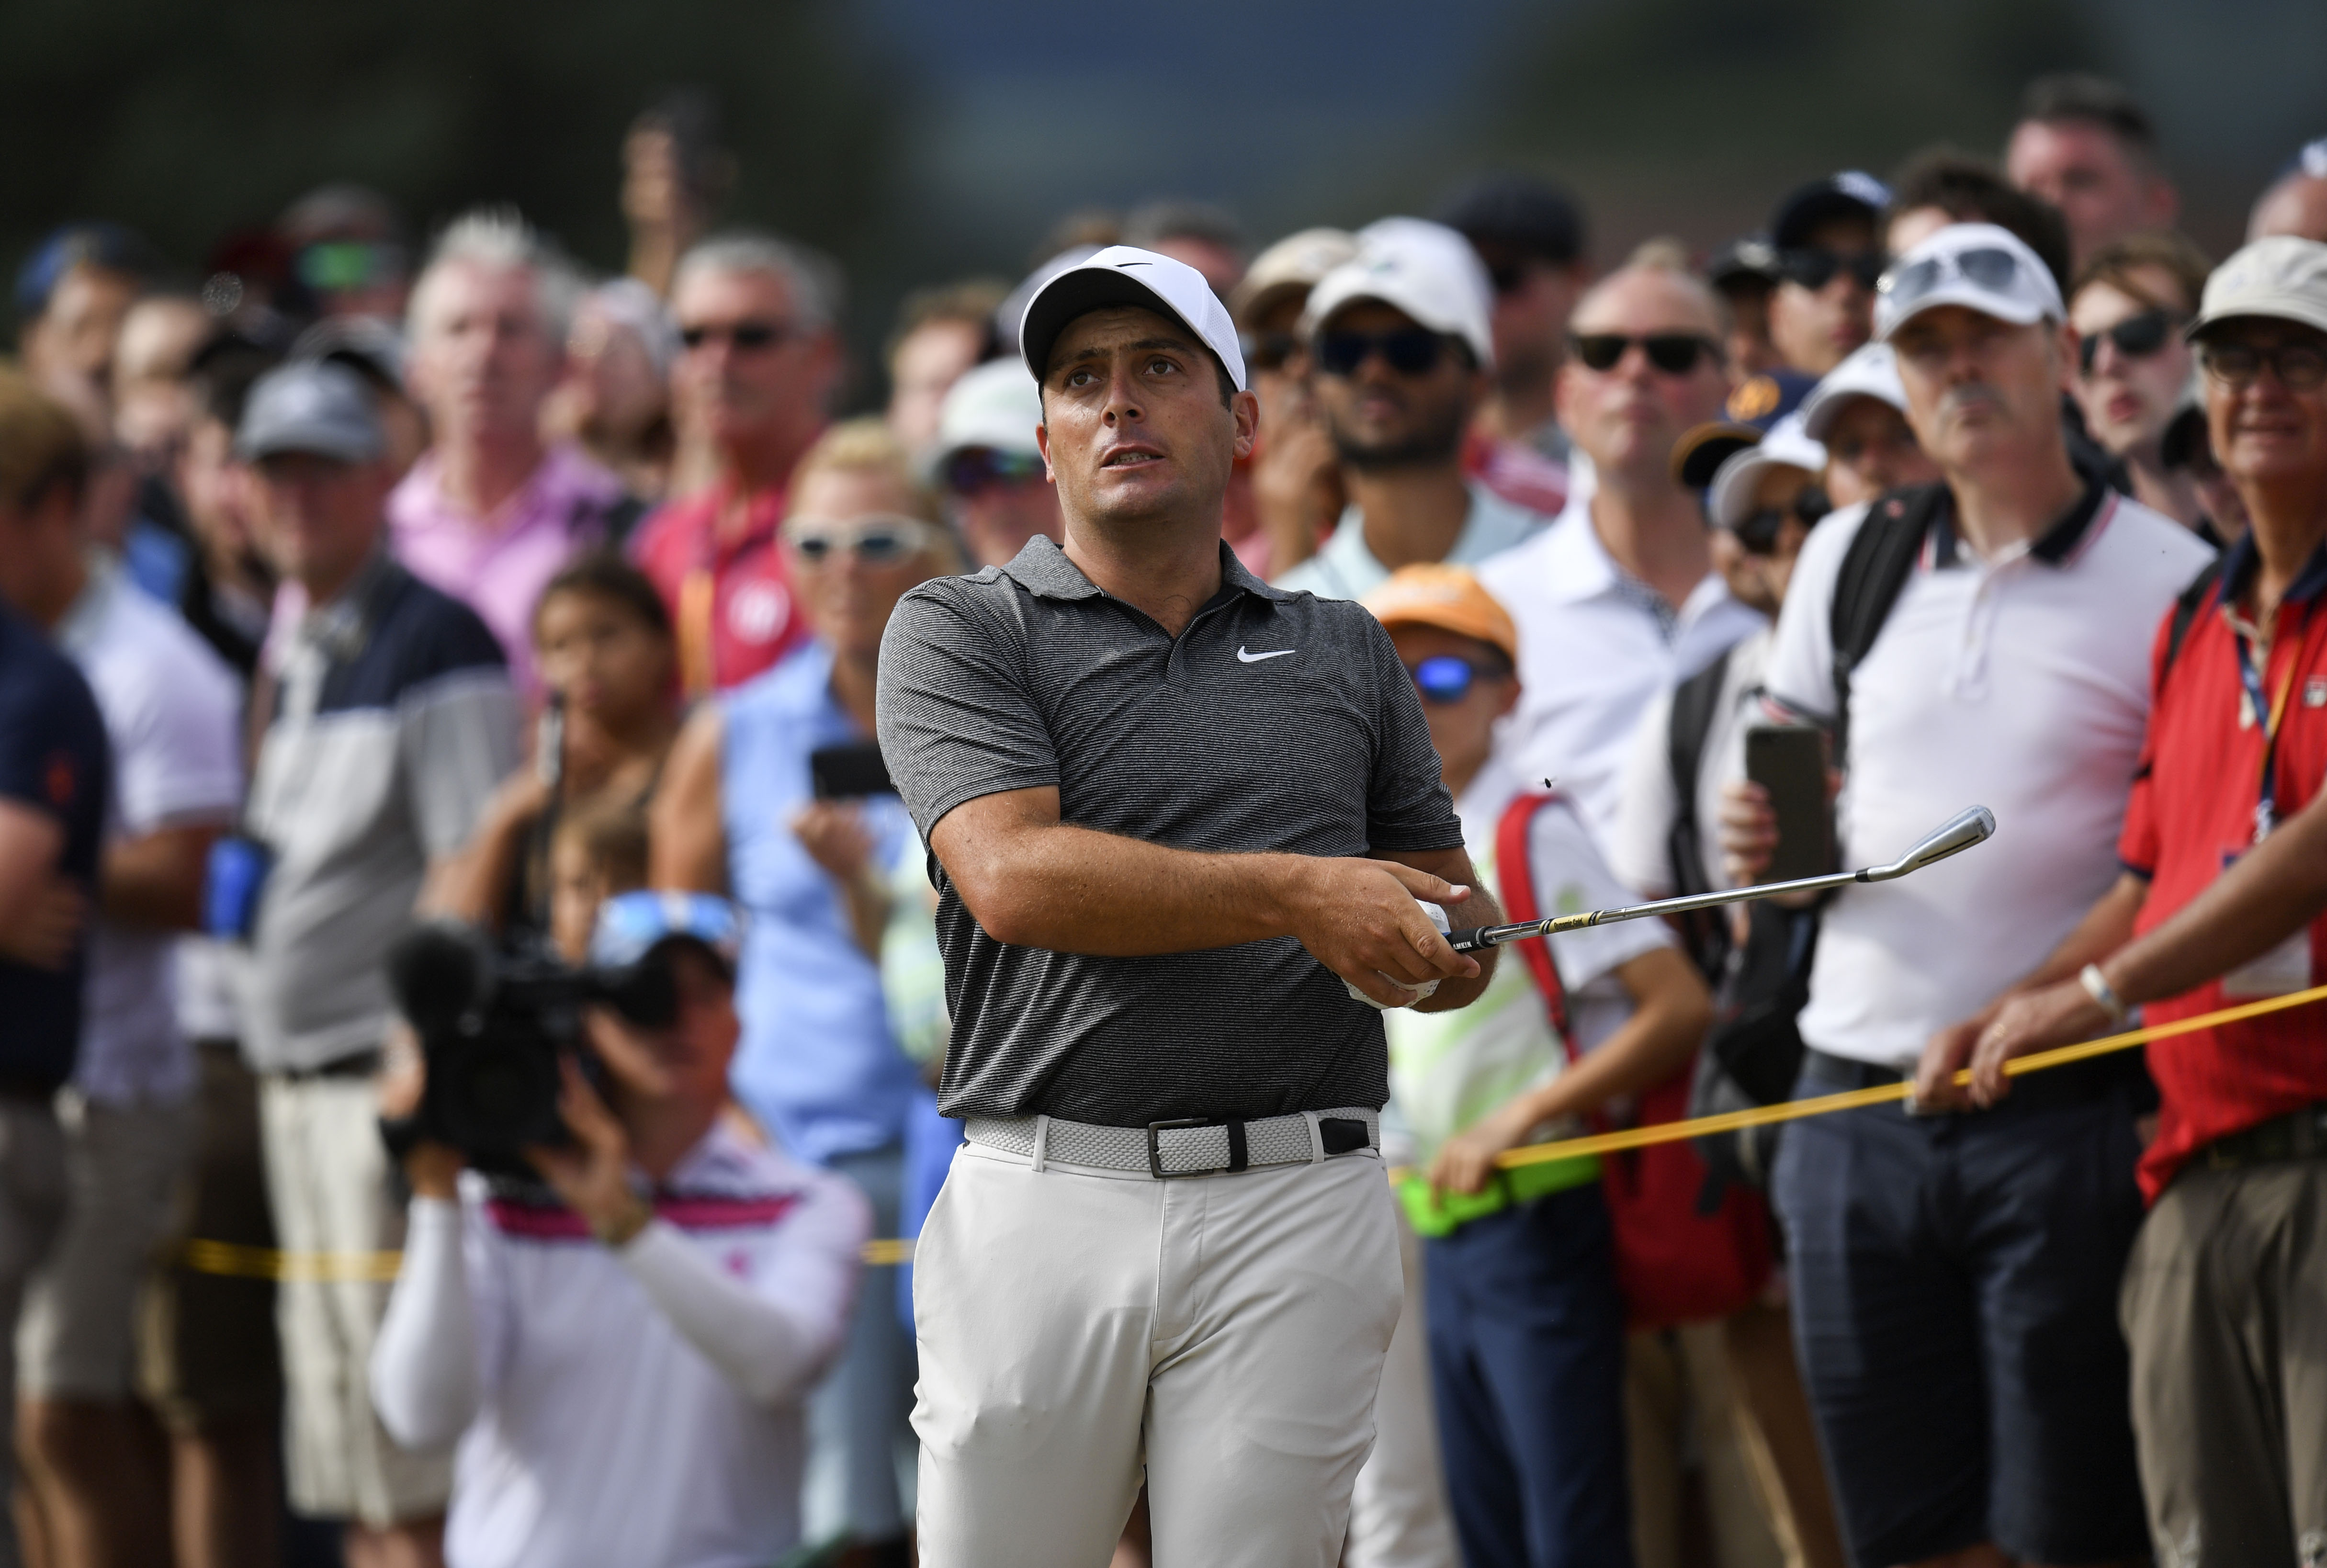 Jul 22, 2018; Carnoustie, Angus, SCT; Francesco Molinari hits in the tall grass on the 12th fairway during the final round of The Open Championship golf tournament at Carnoustie Golf Links. Mandatory Credit: Thomas J. Russo-USA TODAY Sports